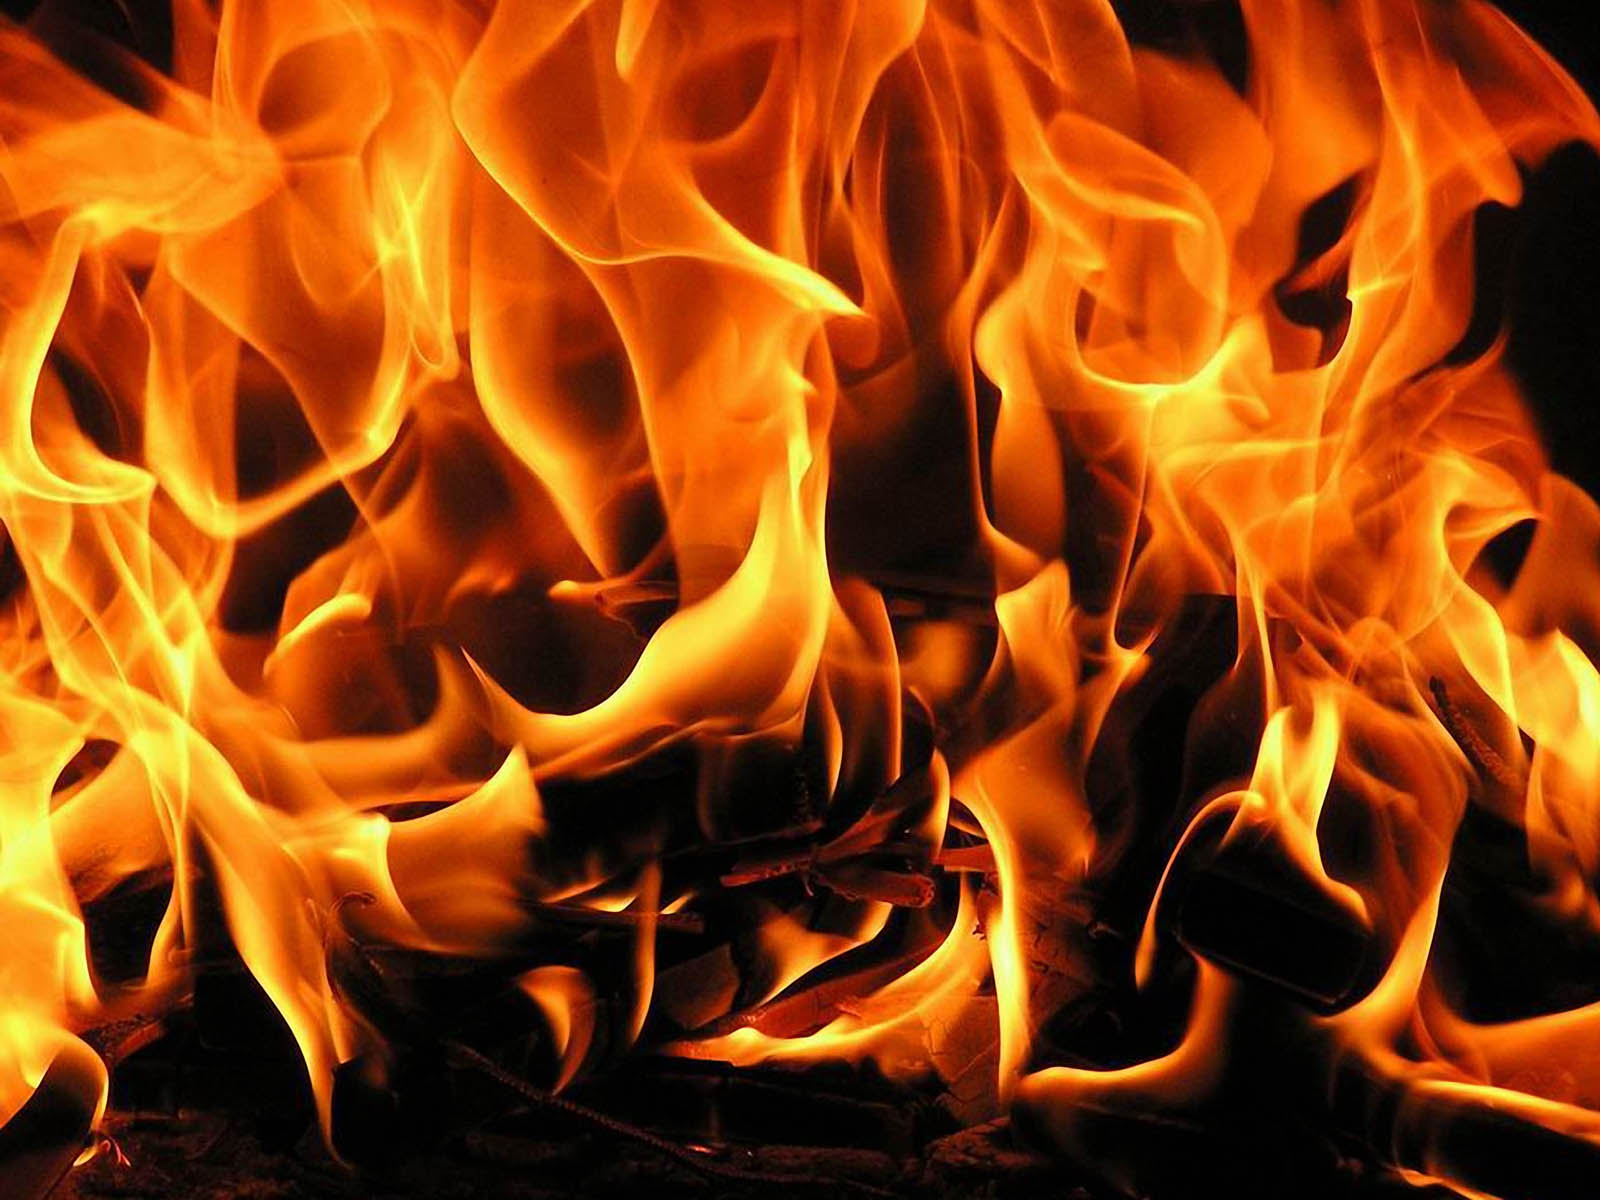 Flames Images Photos Pictures Wallpapers and Backgrounds for 1600x1200